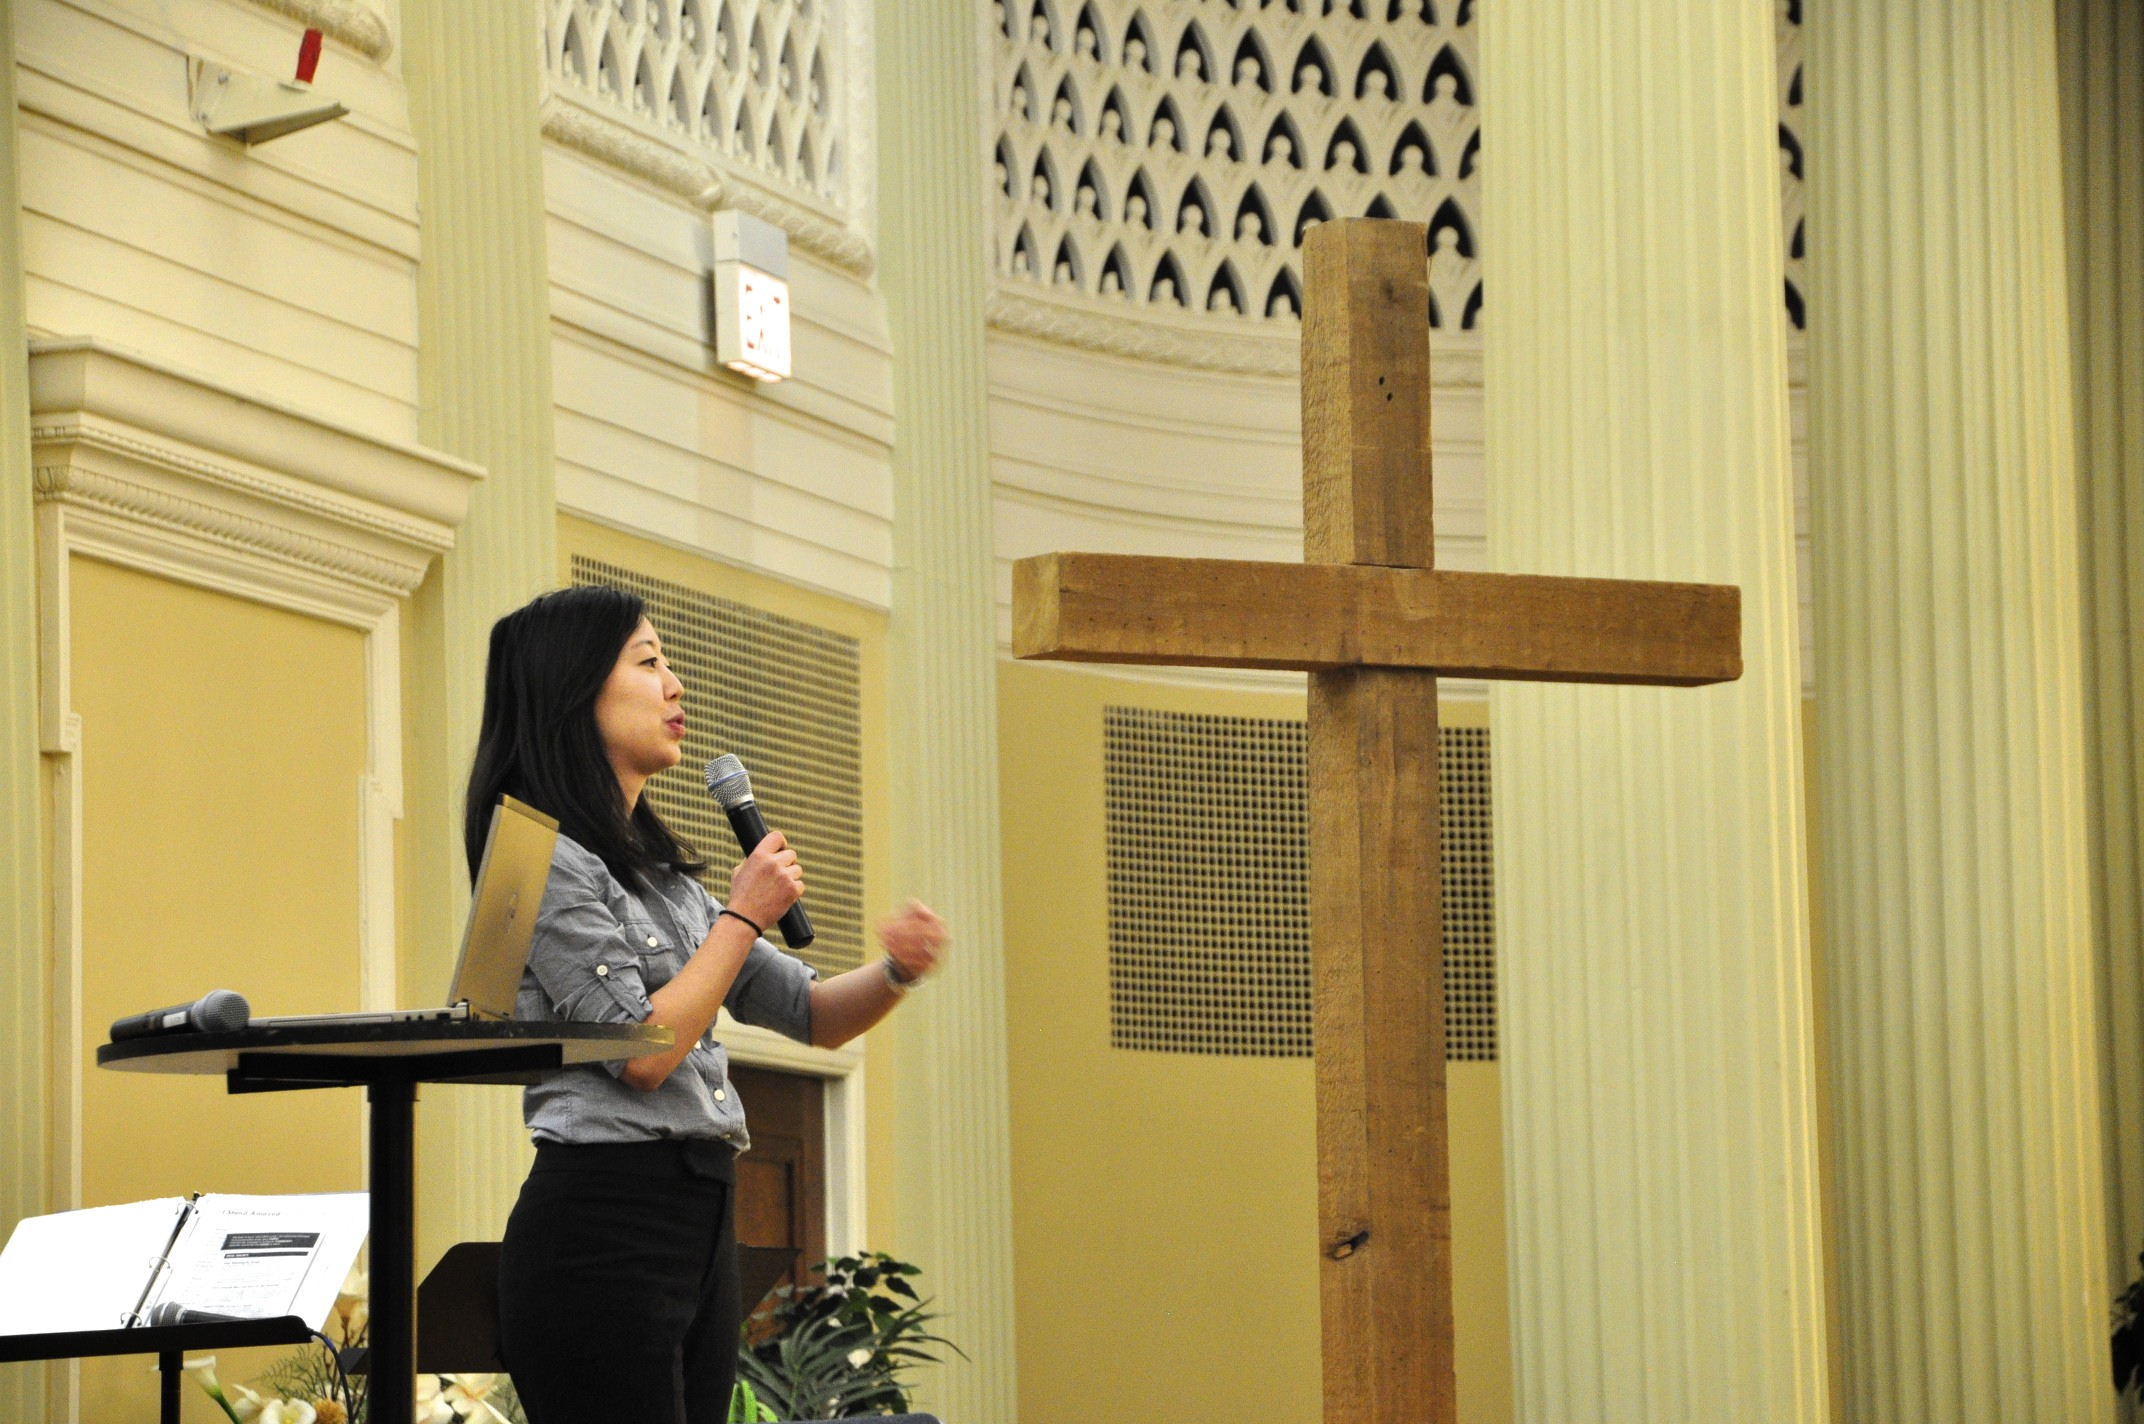 Immigration advocate Jenny Yang overcomes reluctance to speak up      FORBES